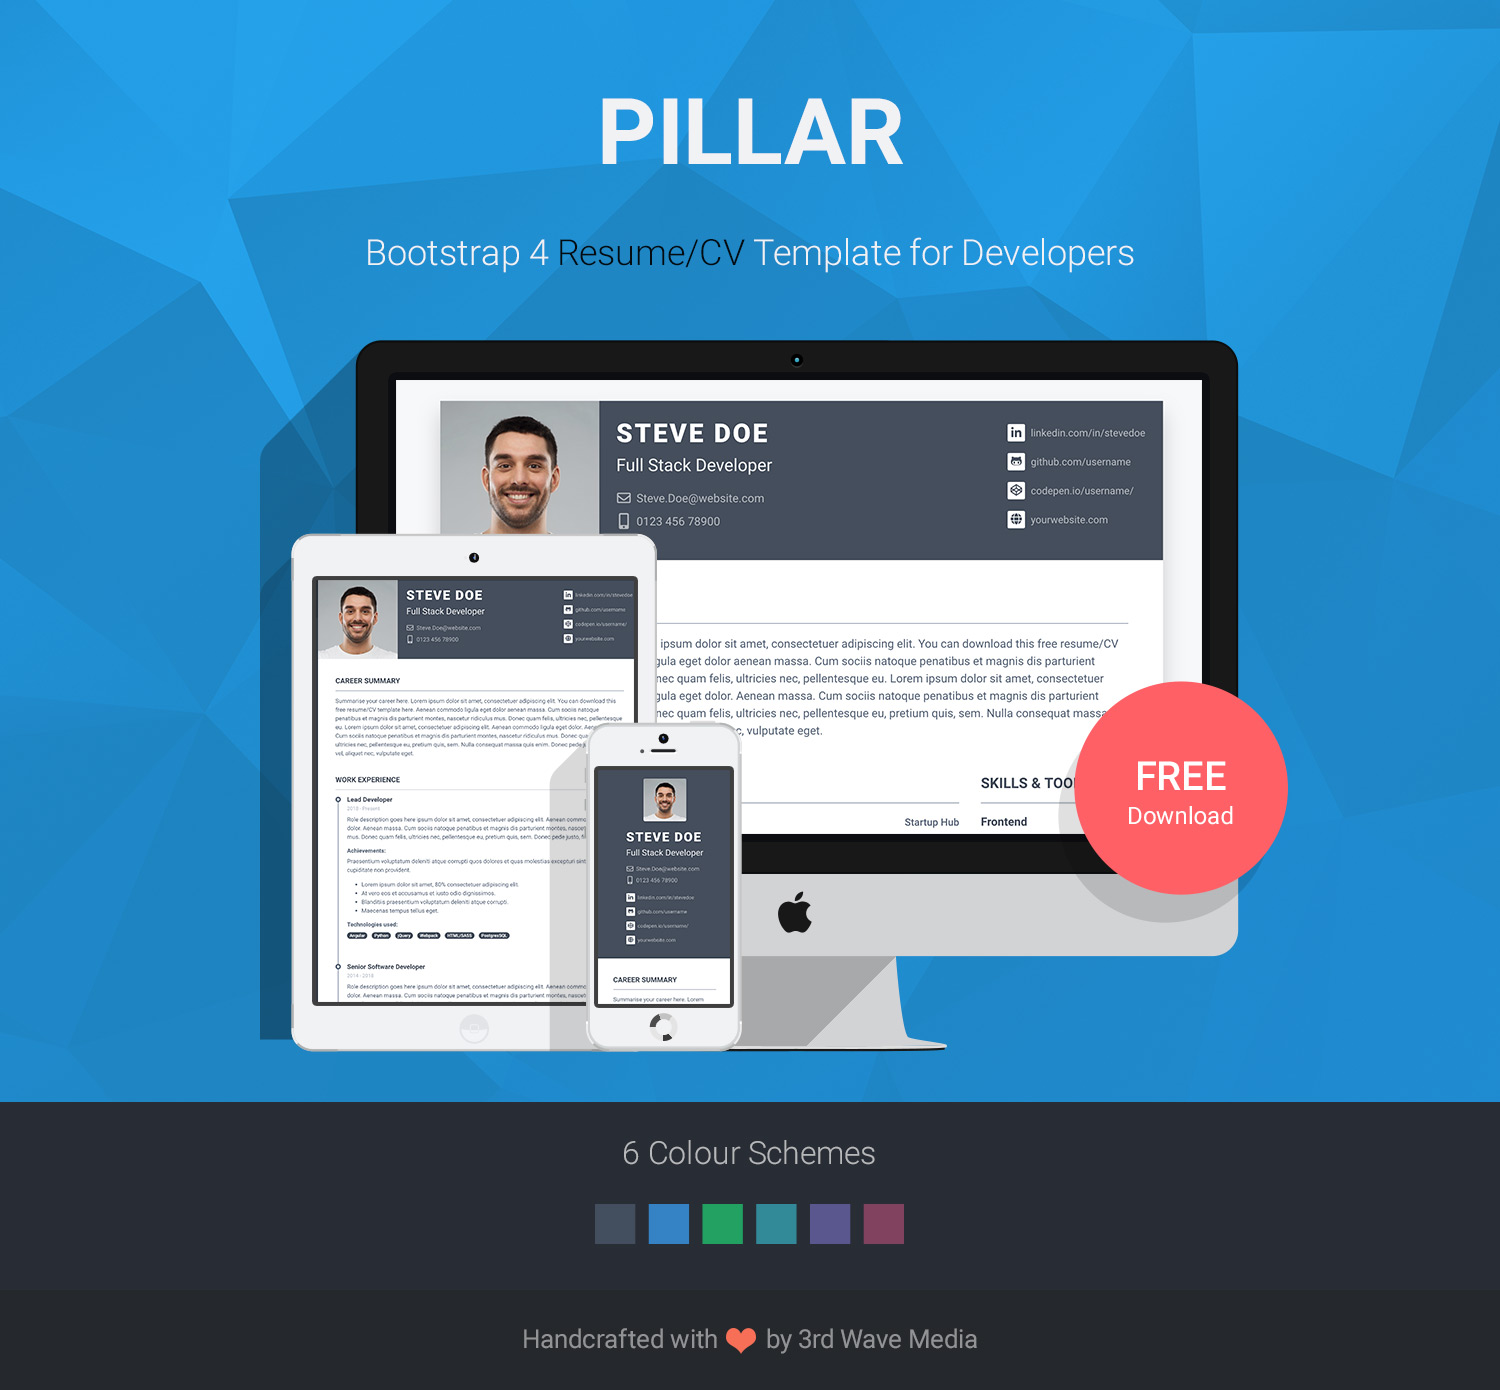 Pillar - Free Bootstrap 4 Resume/CV Template for Developers | UX